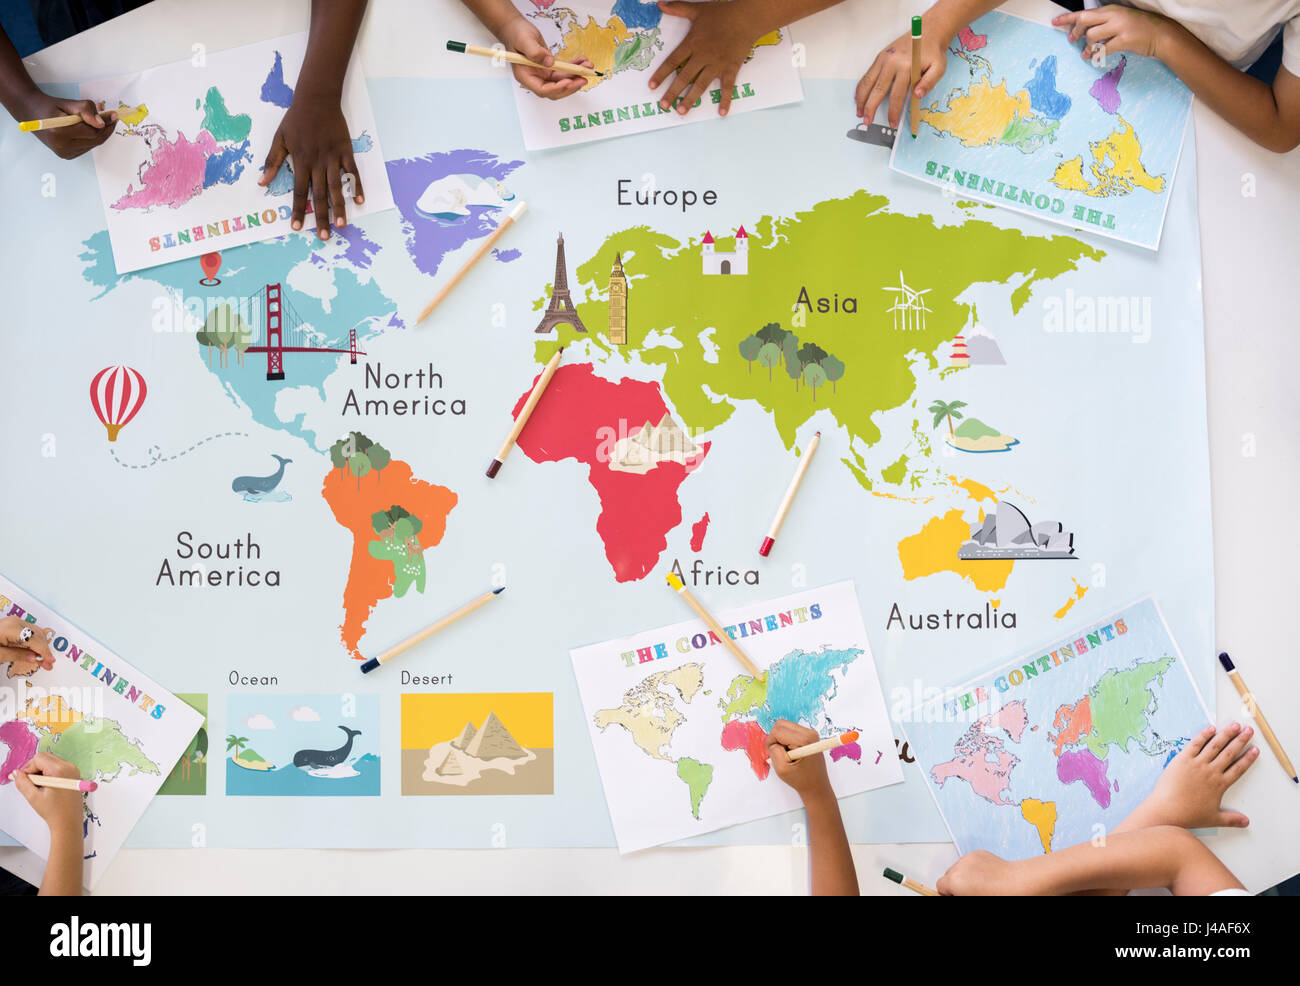 Kids learning world map with continents countries ocean geography kids learning world map with continents countries ocean geography gumiabroncs Choice Image